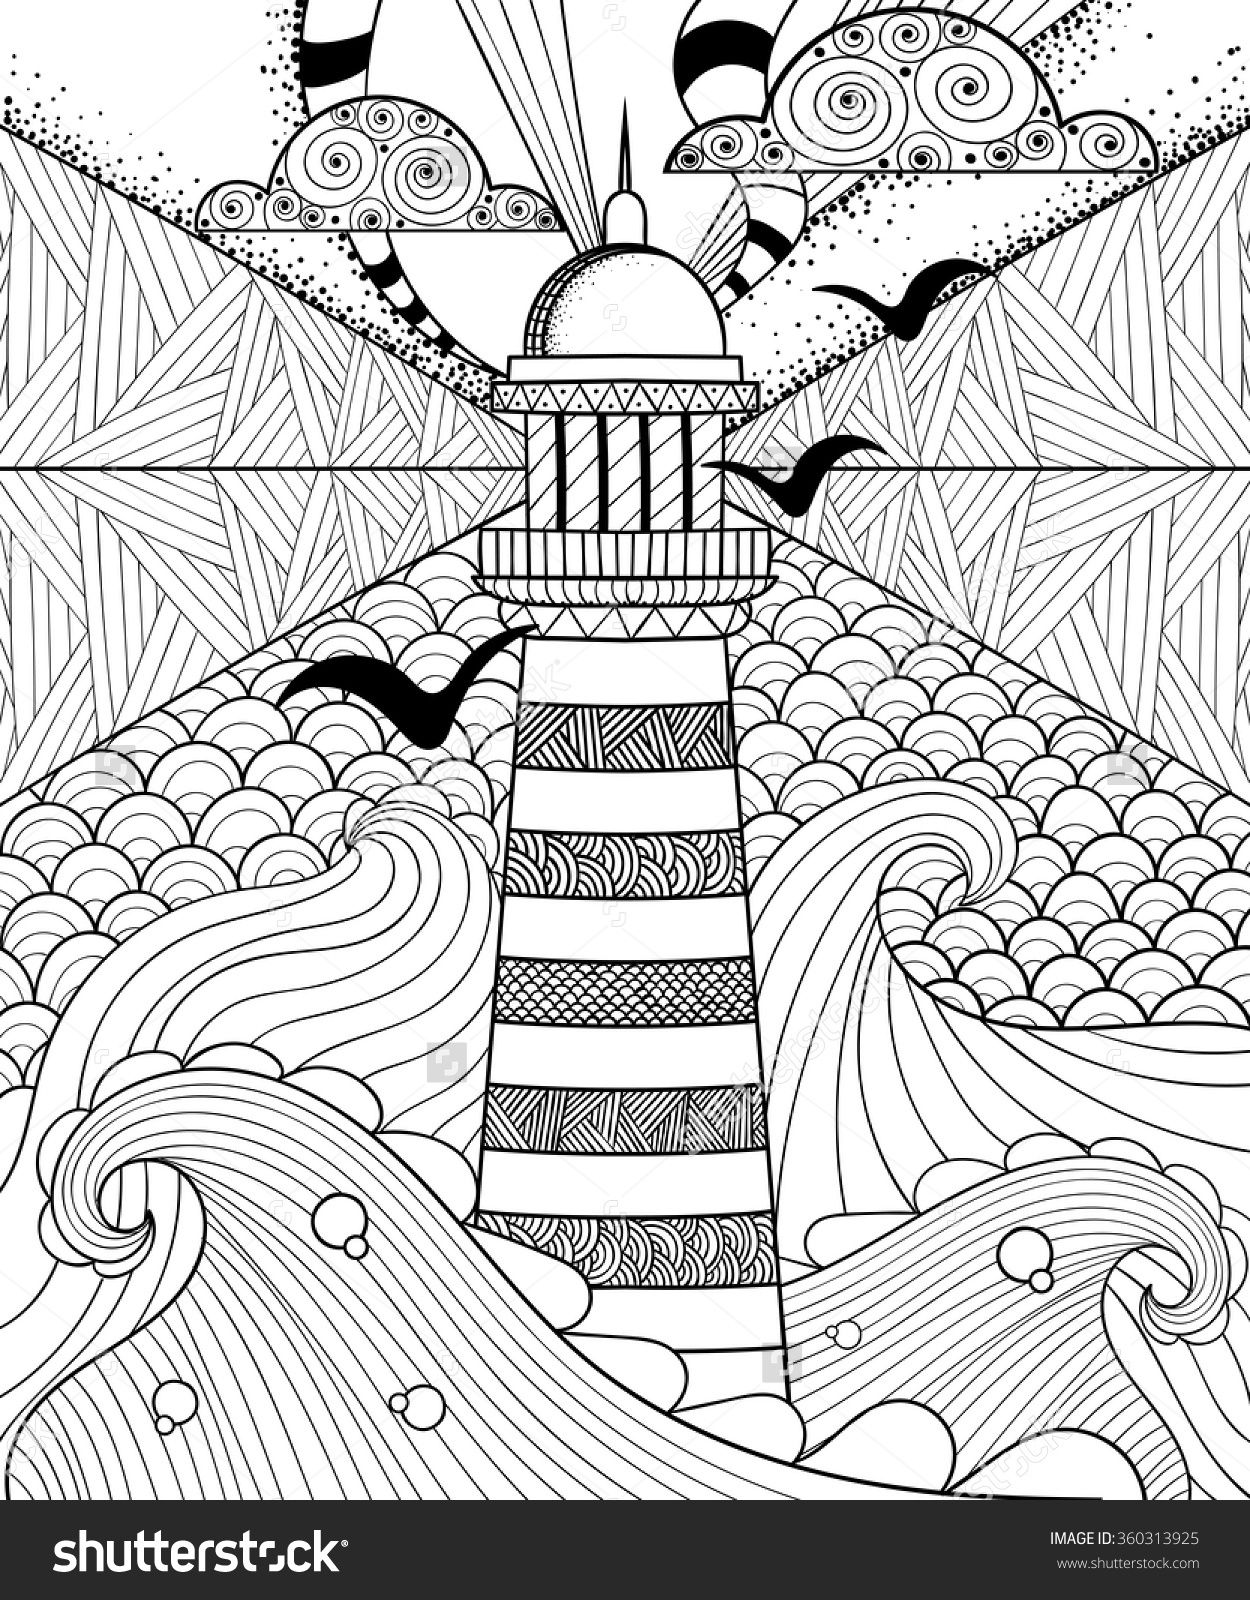 Best photos of t shirt coloring template t shirt drawing - Hand Drawn Artistically Ethnic Ornamental Patterned Lighthouse With Clouds In Doodle Zentangle Tribal Style For Adult Coloring Book Pages Tattoo T Shirt